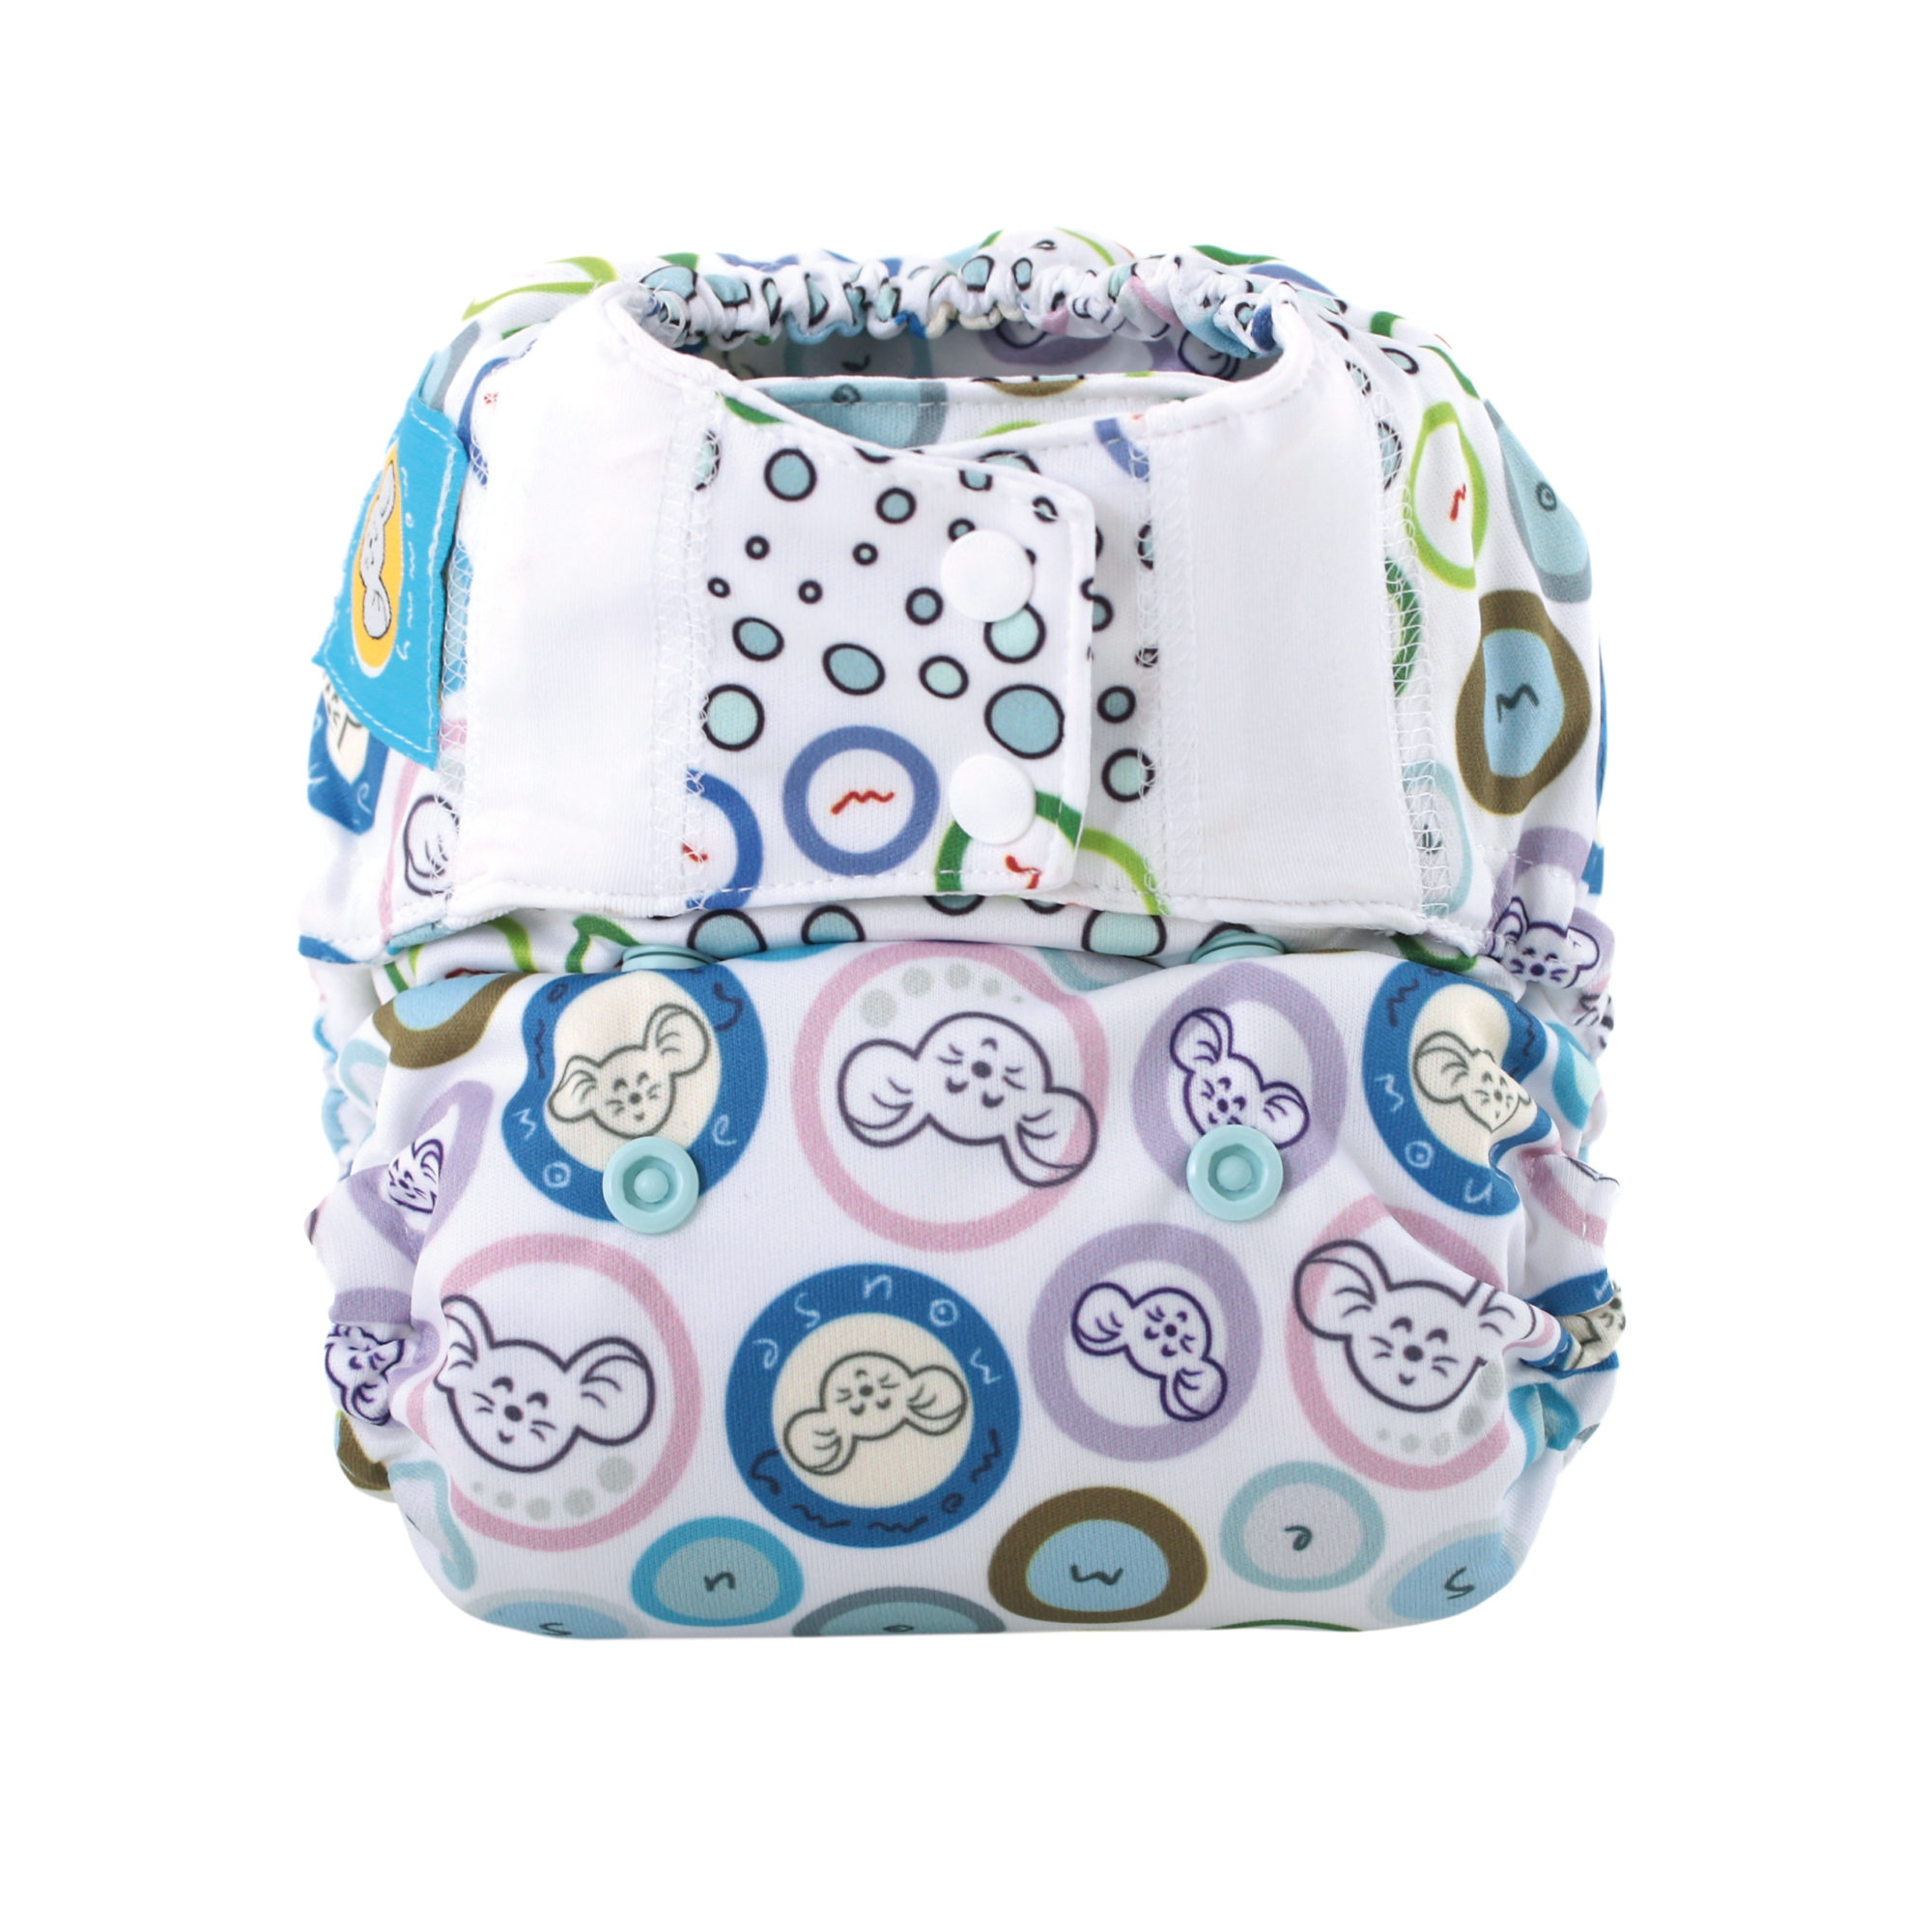 bubble-gum-lommebleie-os-4-16kg-thermo-mommy-mouse